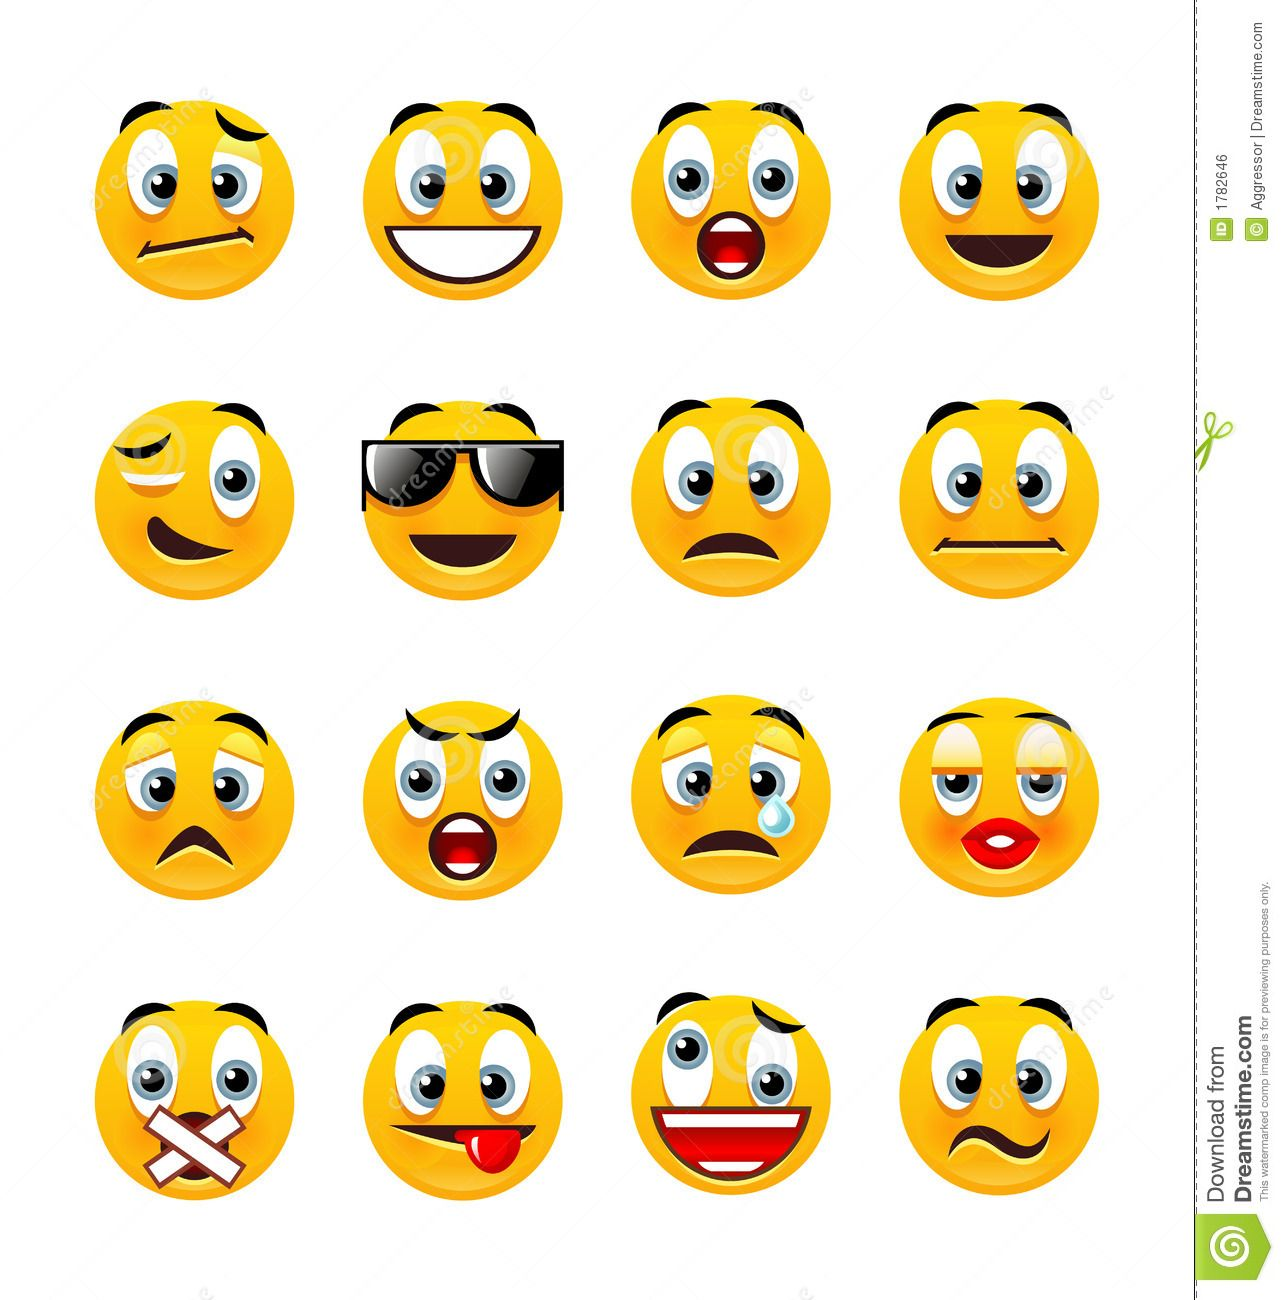 Smiley recherche google tableaux pinterest smiley an amazing list of text message symbols youll want to bookmark biocorpaavc Images